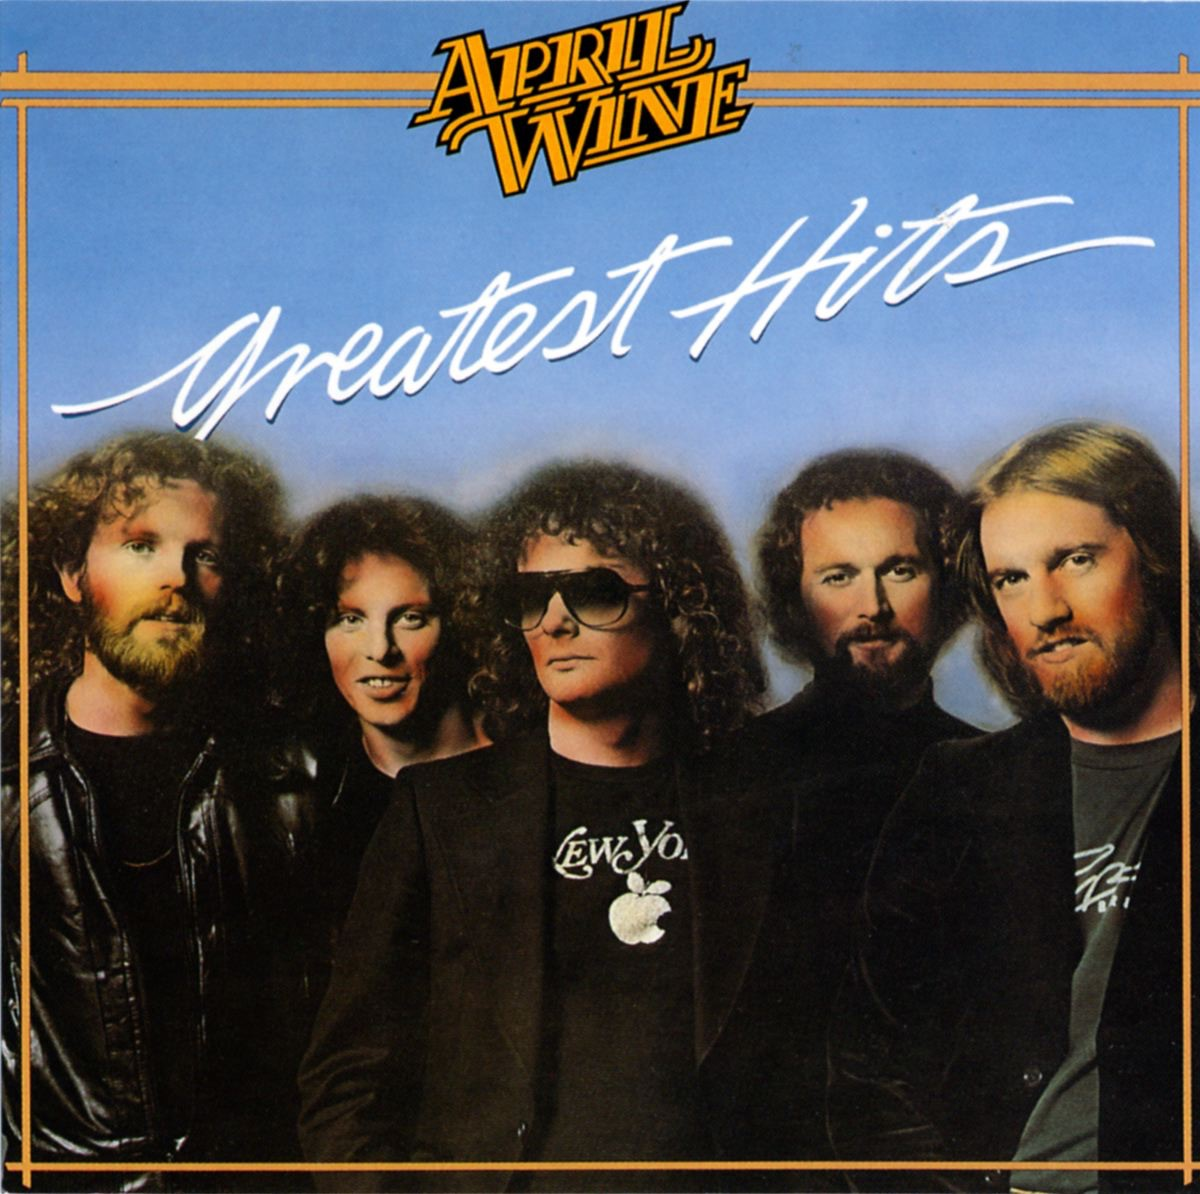 Art for Tonite Is a Wonderful Time to Fall In Love by April Wine